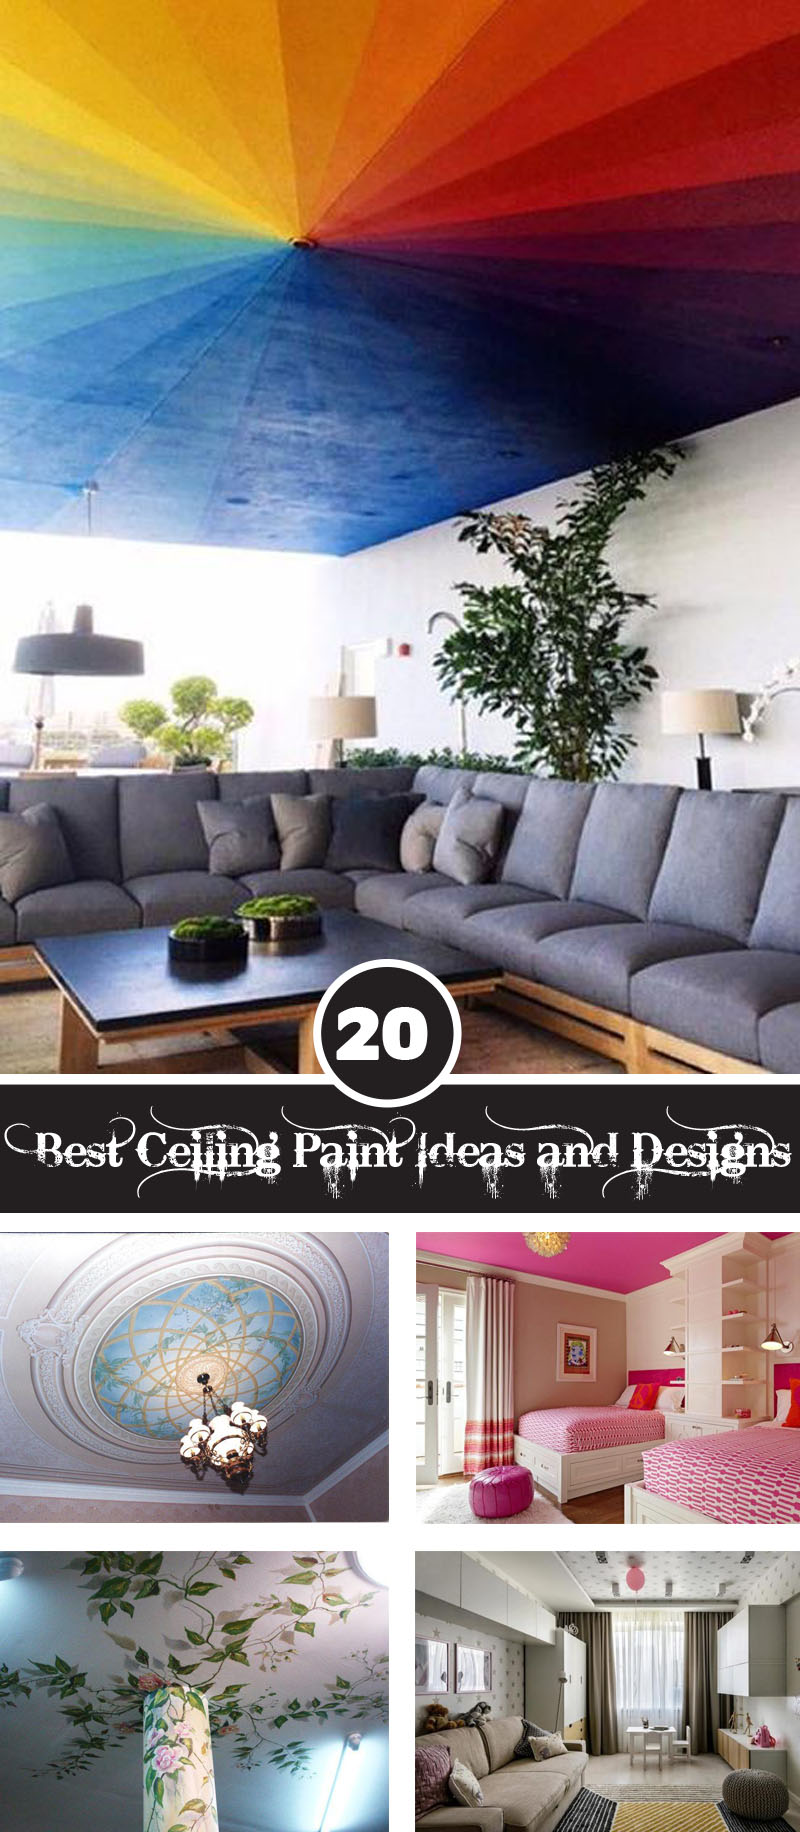 20 Easy Ways To Use Ceiling Paint In Your Home Decor ...